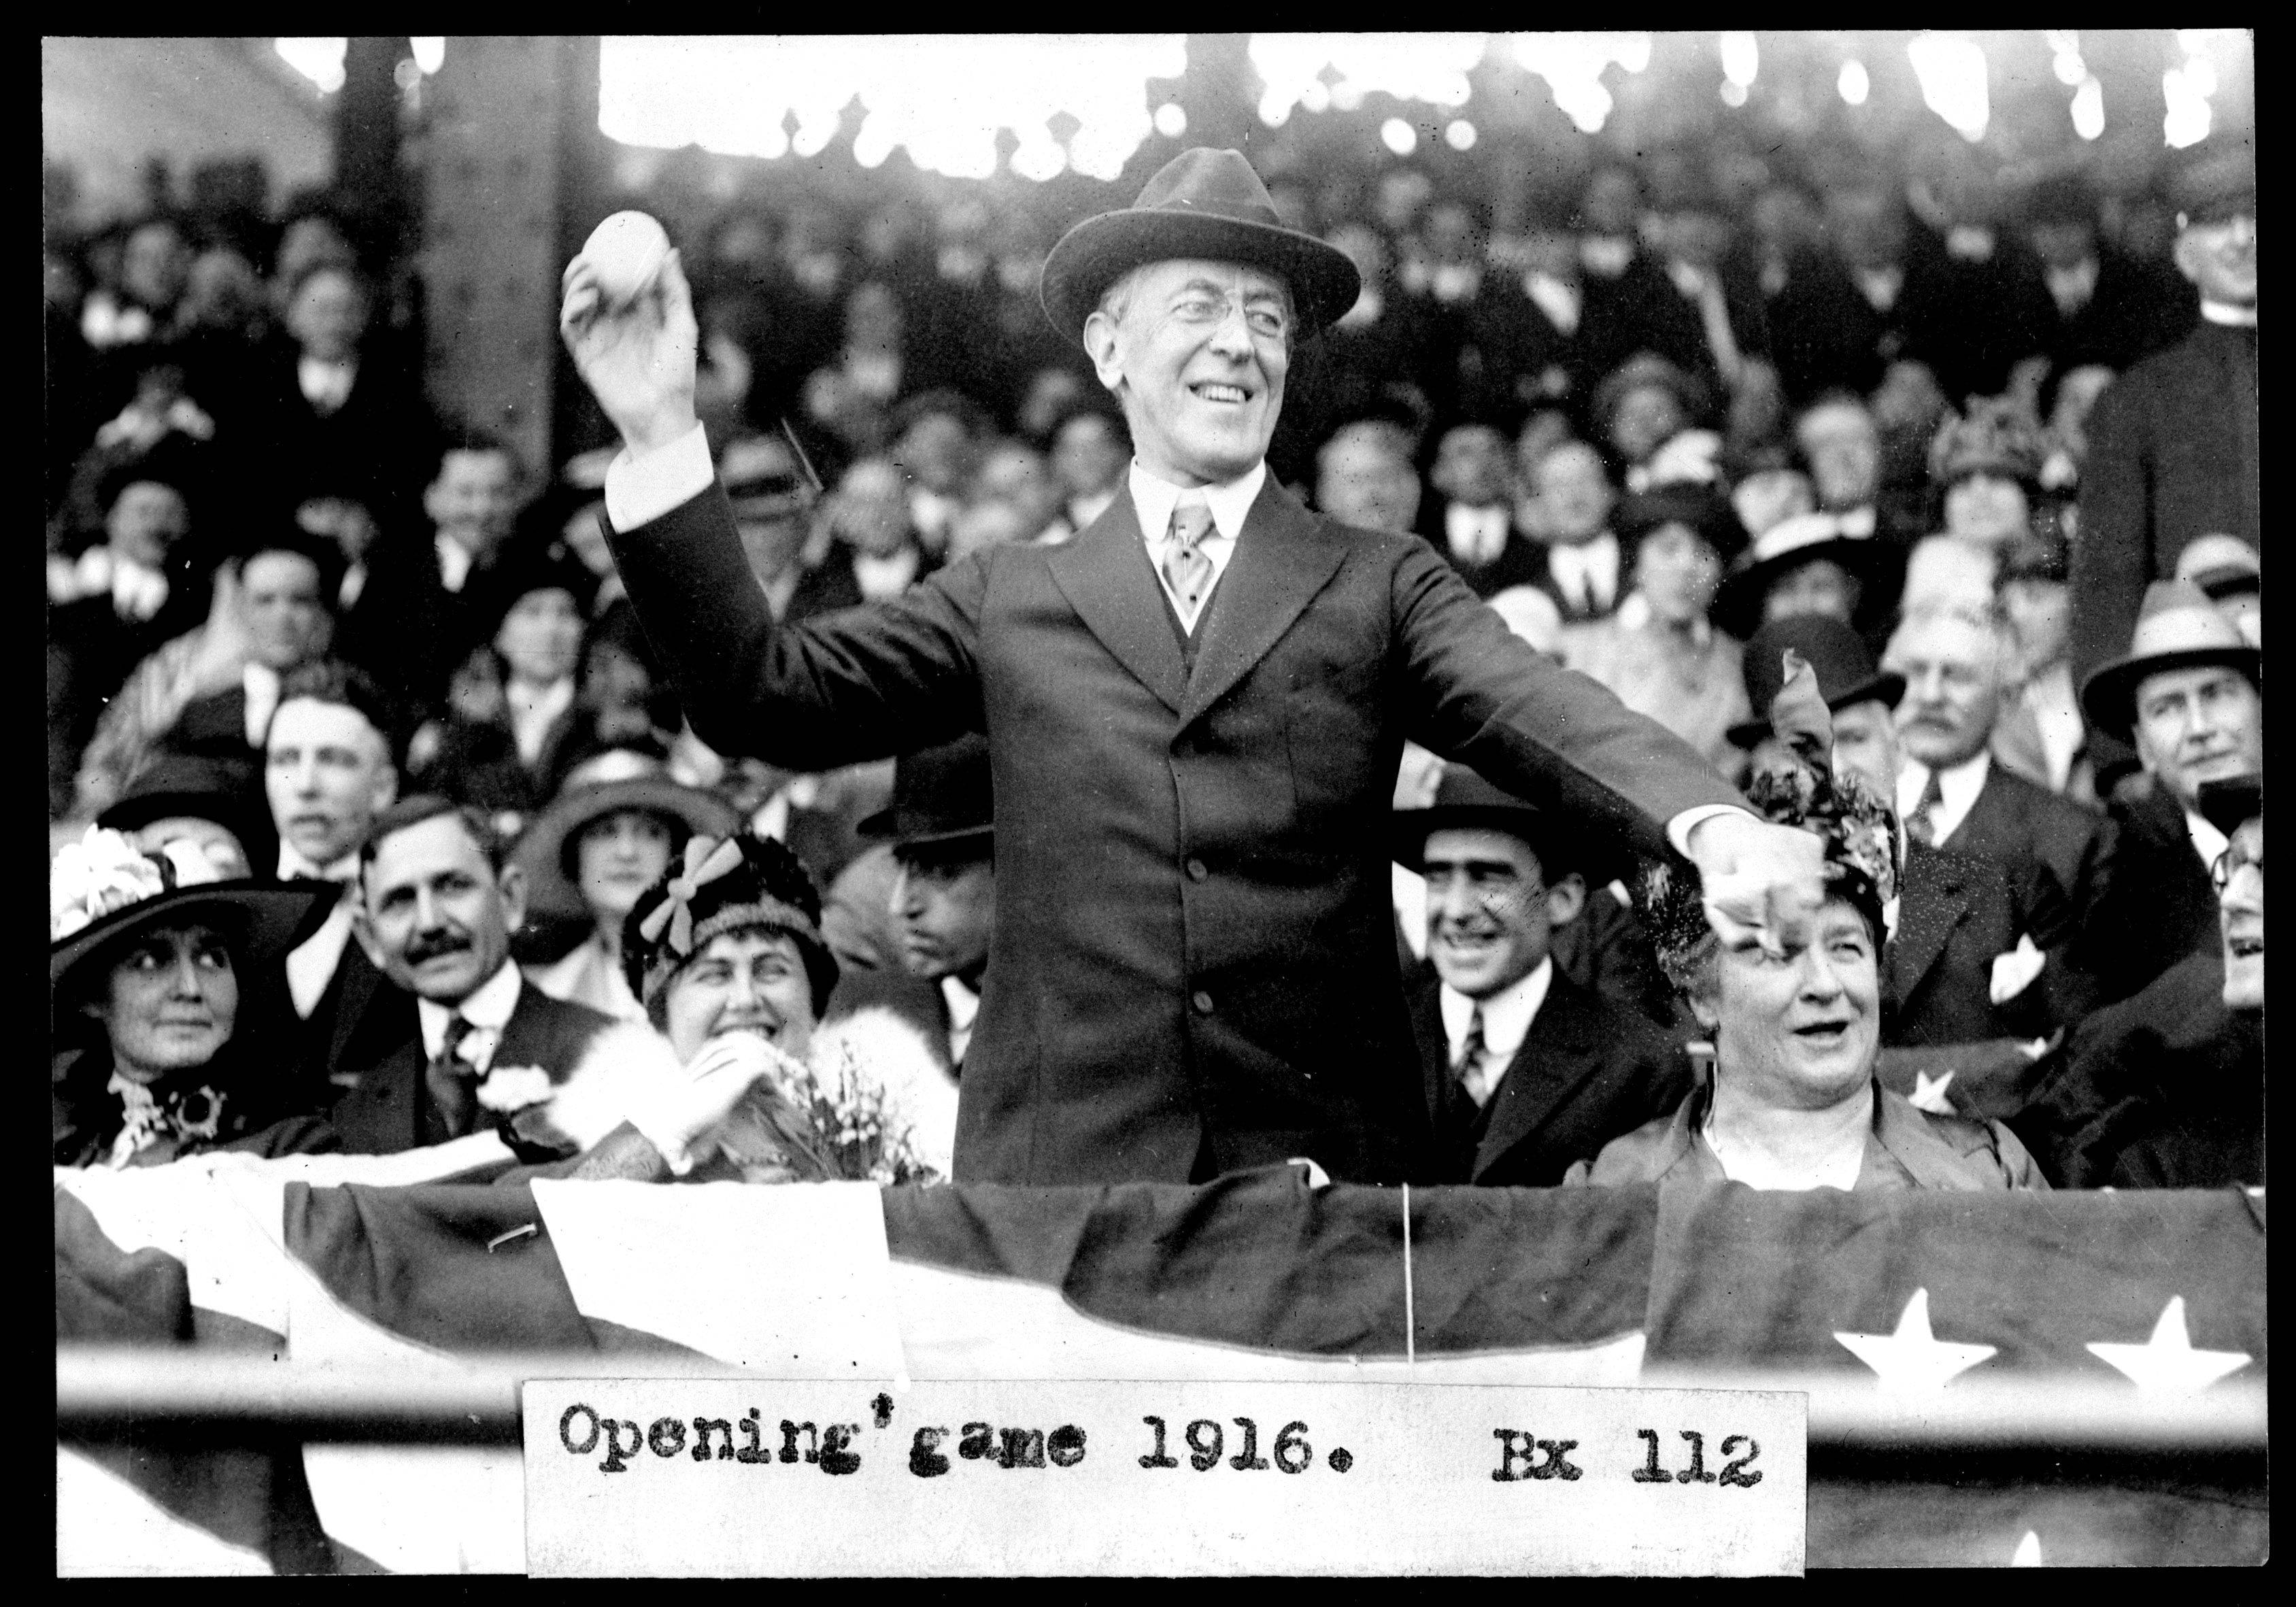 President Woodrow Wilson, shown throwing the first pitch at an opening day baseball game in 1916, was the winner of the 1912 presidential election, but in Elgin, the majority of voters supported Progressive (�Bull Moose�) party candidate Theodore Roosevelt.